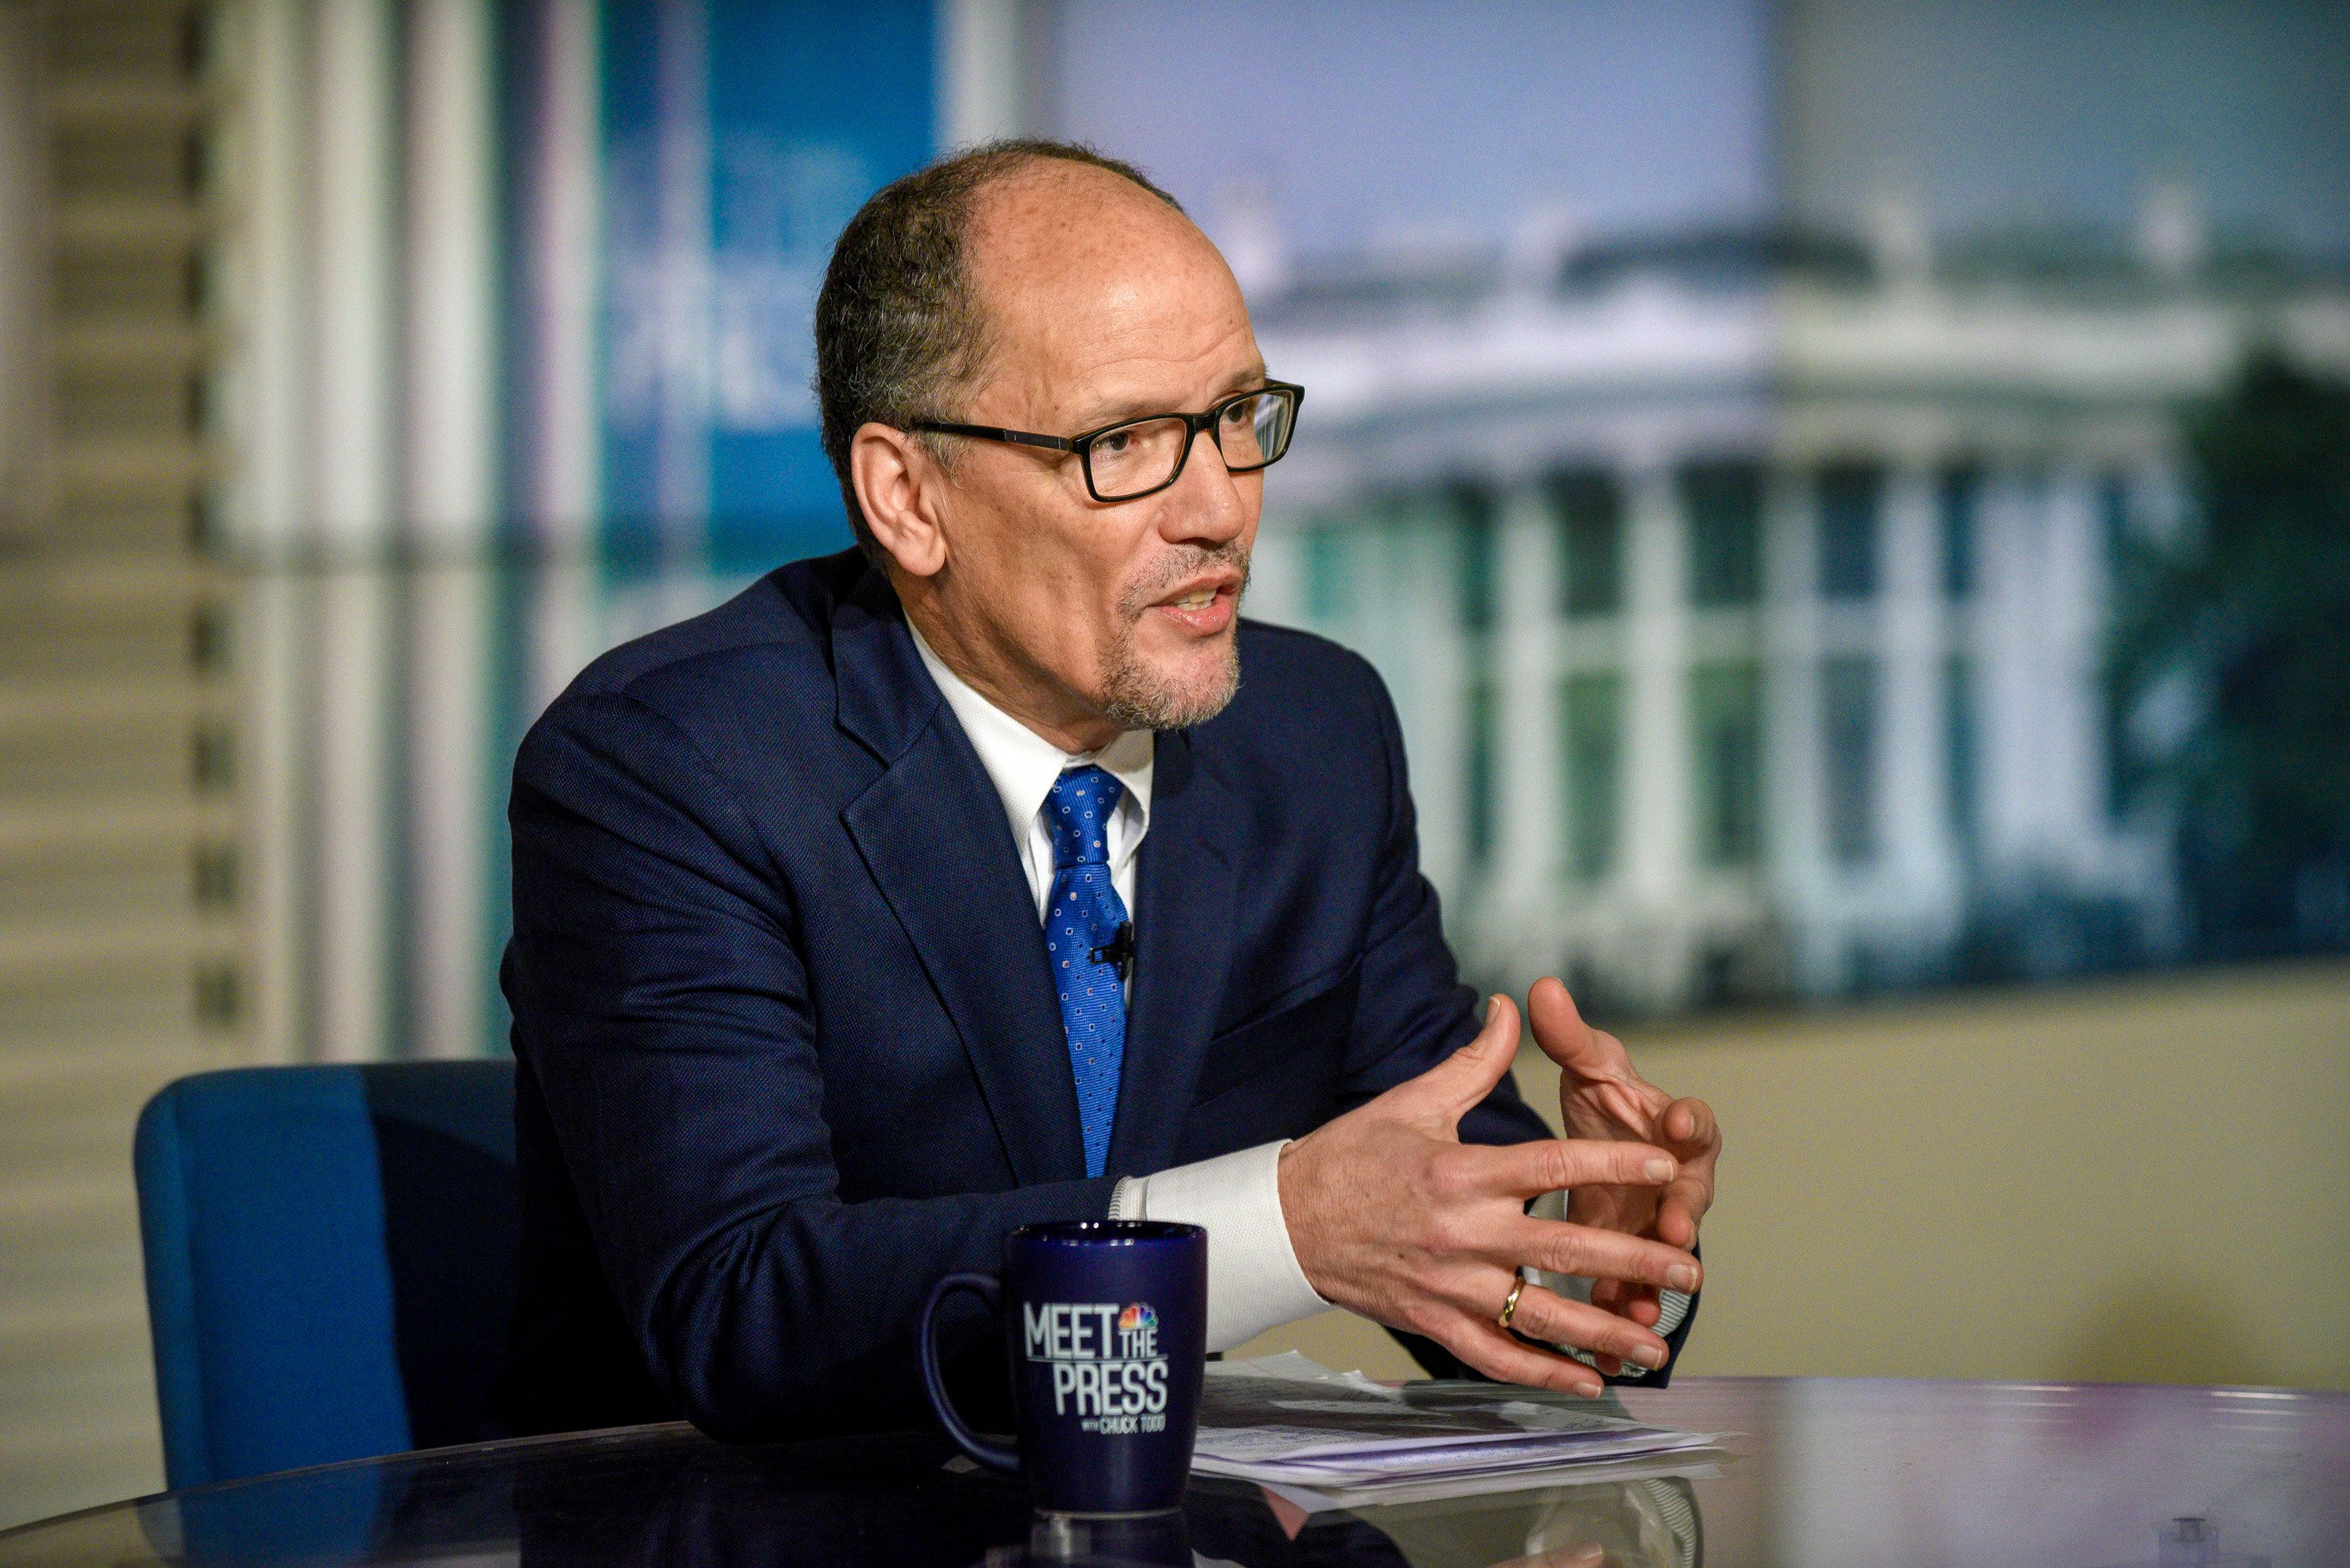 MEET THE PRESS -- Pictured: (l-r) ? Tom Perez, Chair, Democratic National Committee appears on 'Meet the Press' in Washington, D.C., Sunday, Feb. 17, 2019.  (Photo by: William B. Plowman/NBC/NBC NewsWire via Getty Images)